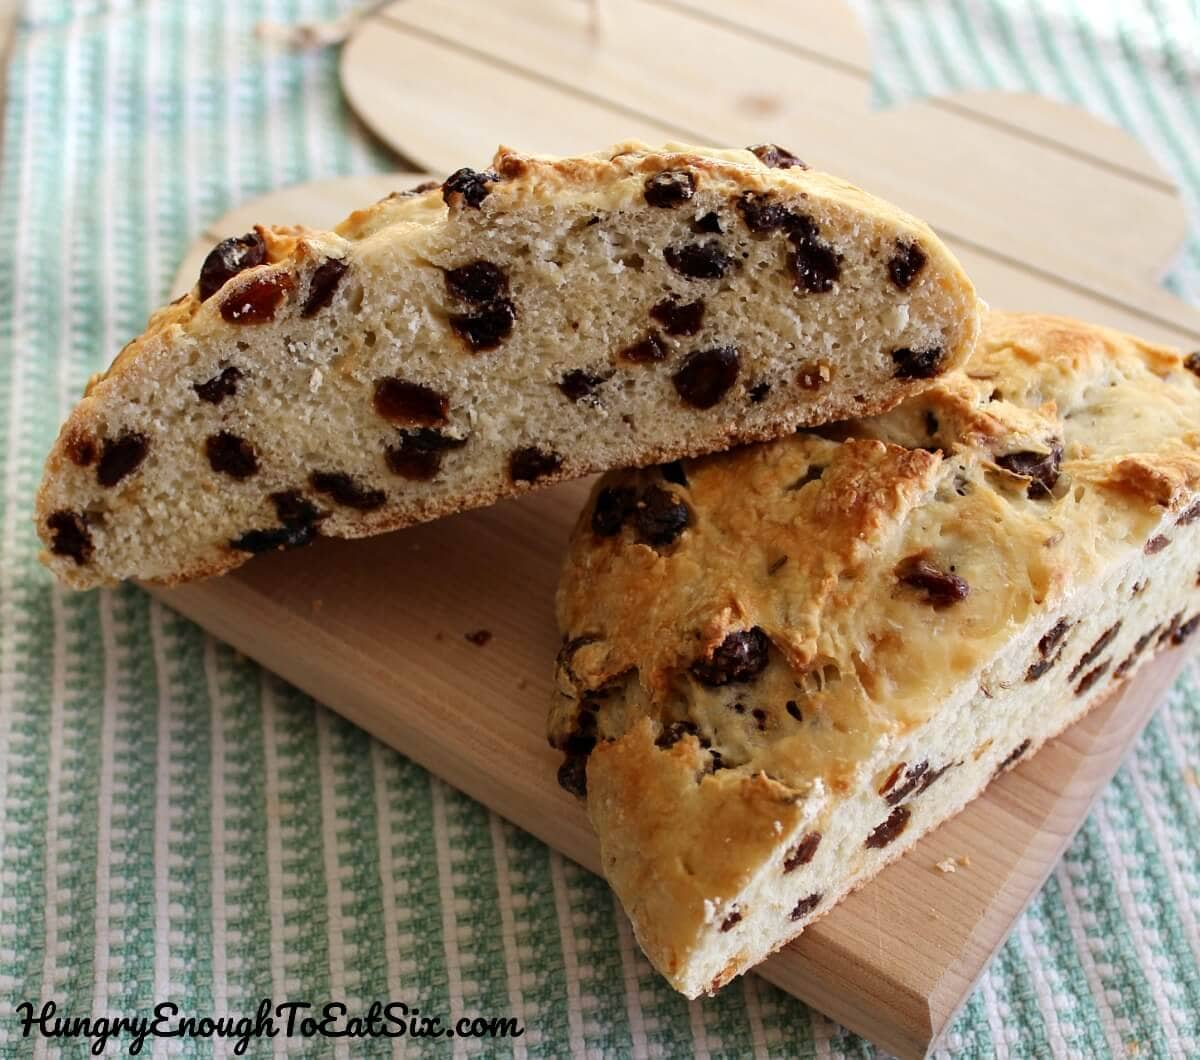 Image of sliced Irish Soda Bread loaf loaded with raisins.